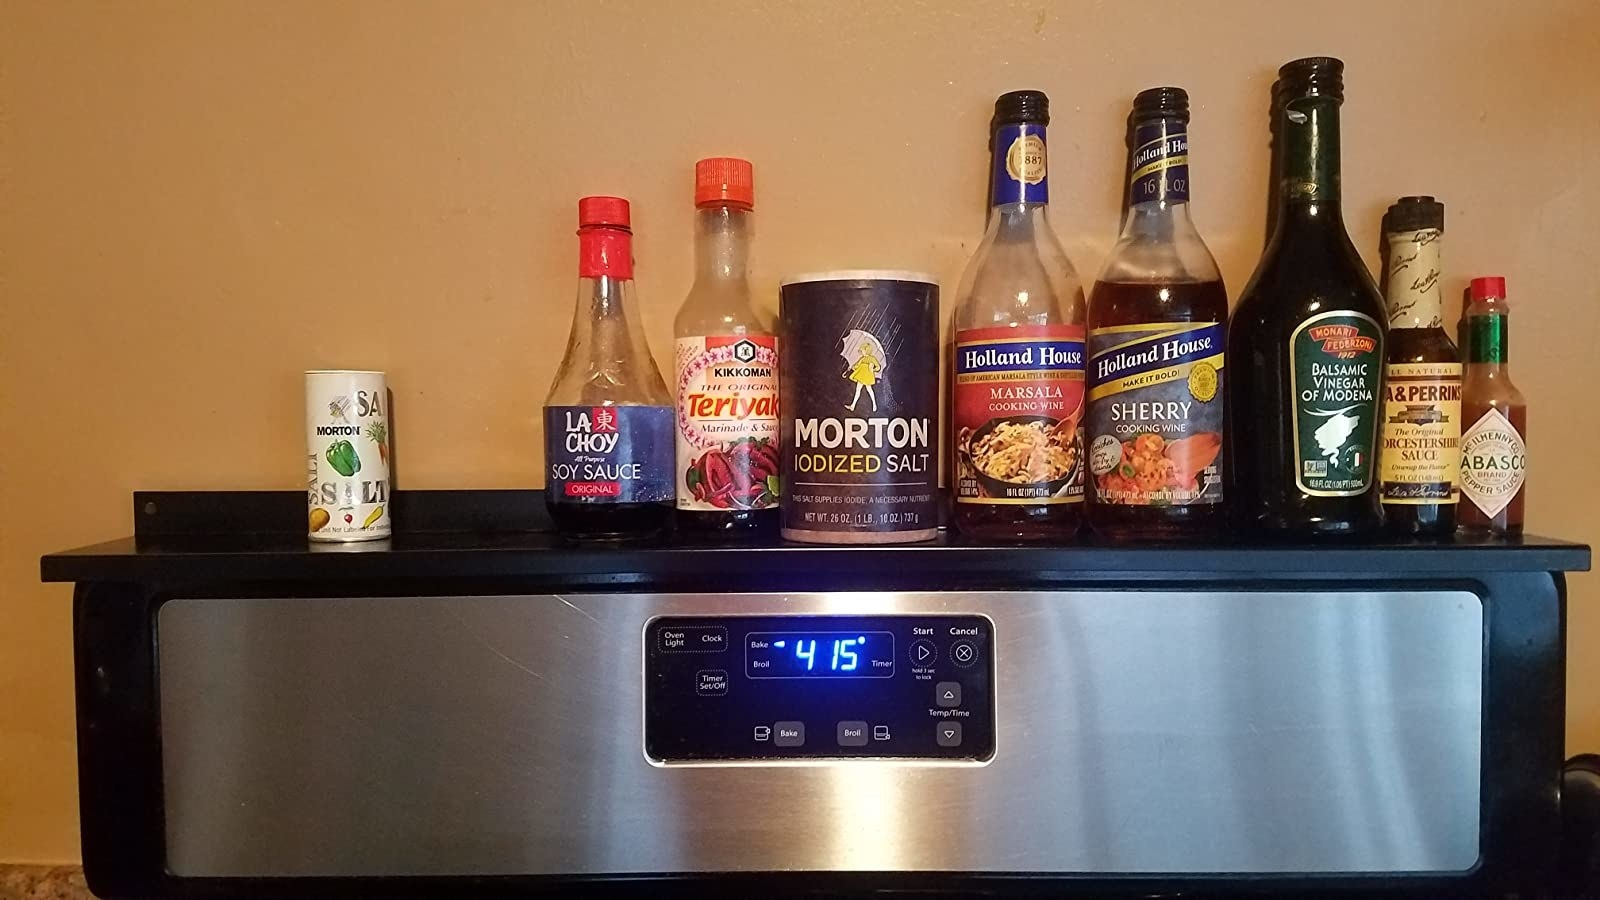 A reviewer's photo of the black shelf holding various pantry items like soy sauce and tabasco